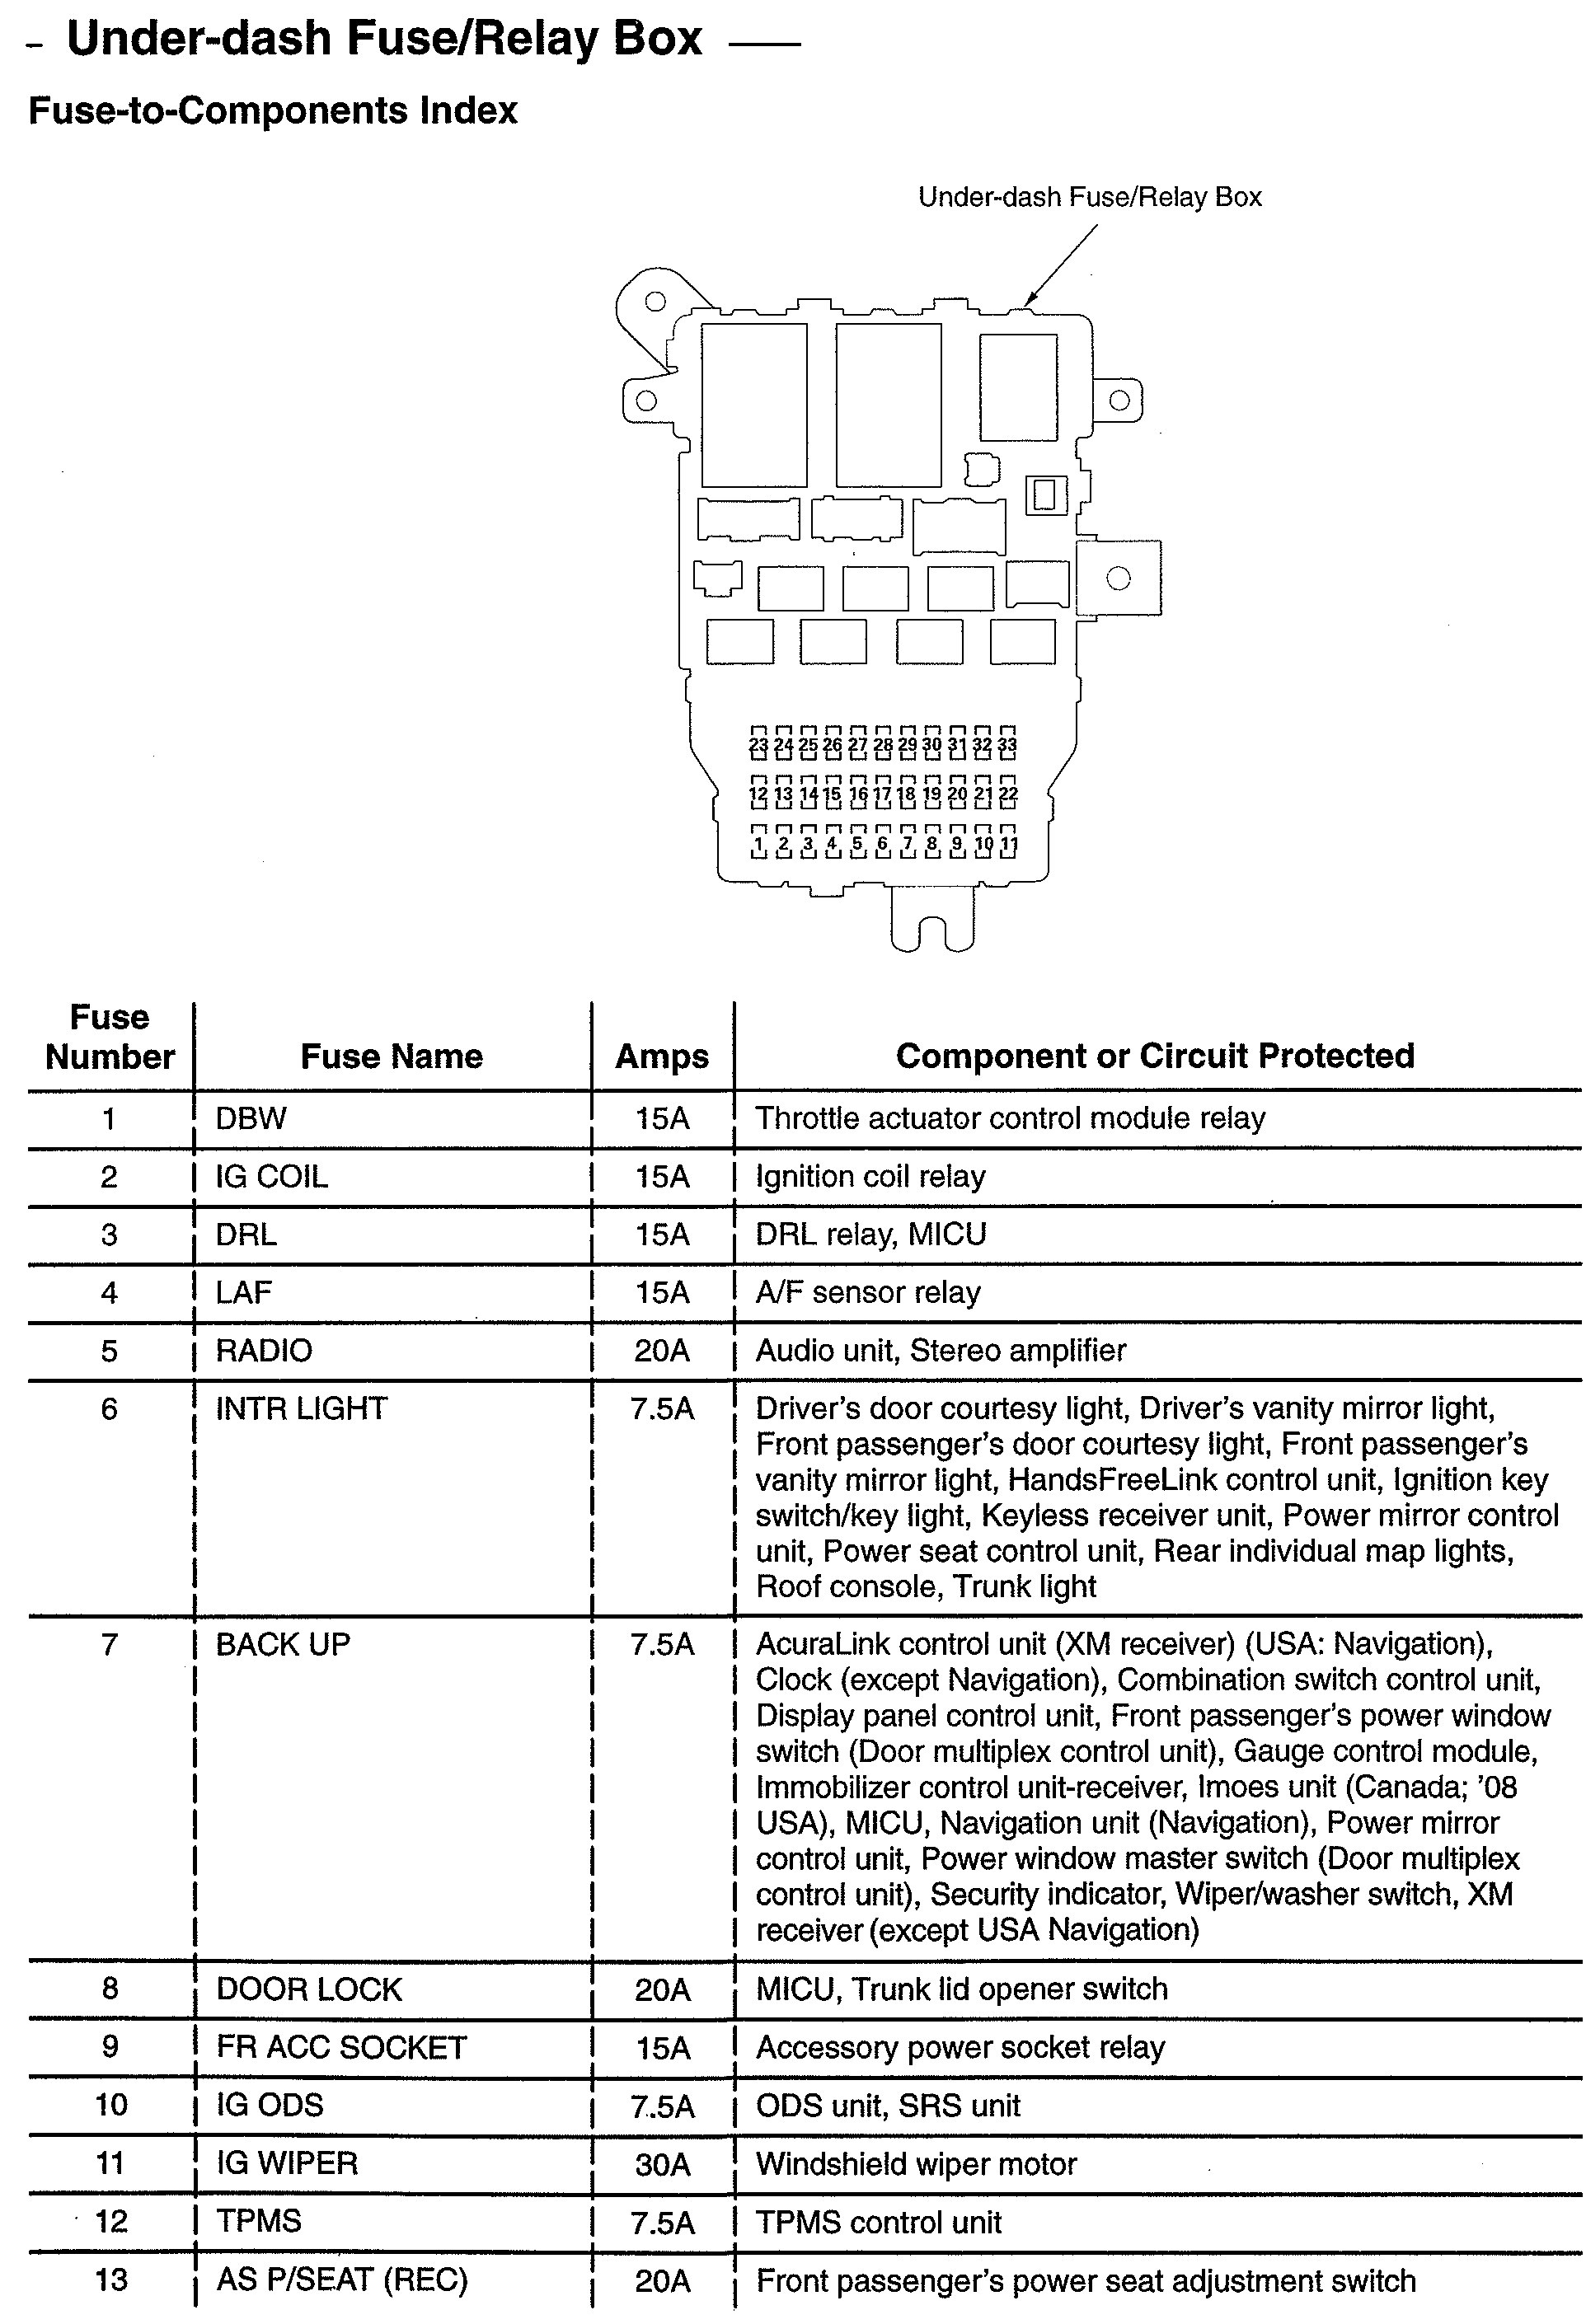 acura tl wiring diagram fuse panel 1 2008 acura tl (2008) wiring diagrams fuse panel carknowledge 2007 acura tl wiring diagram at pacquiaovsvargaslive.co